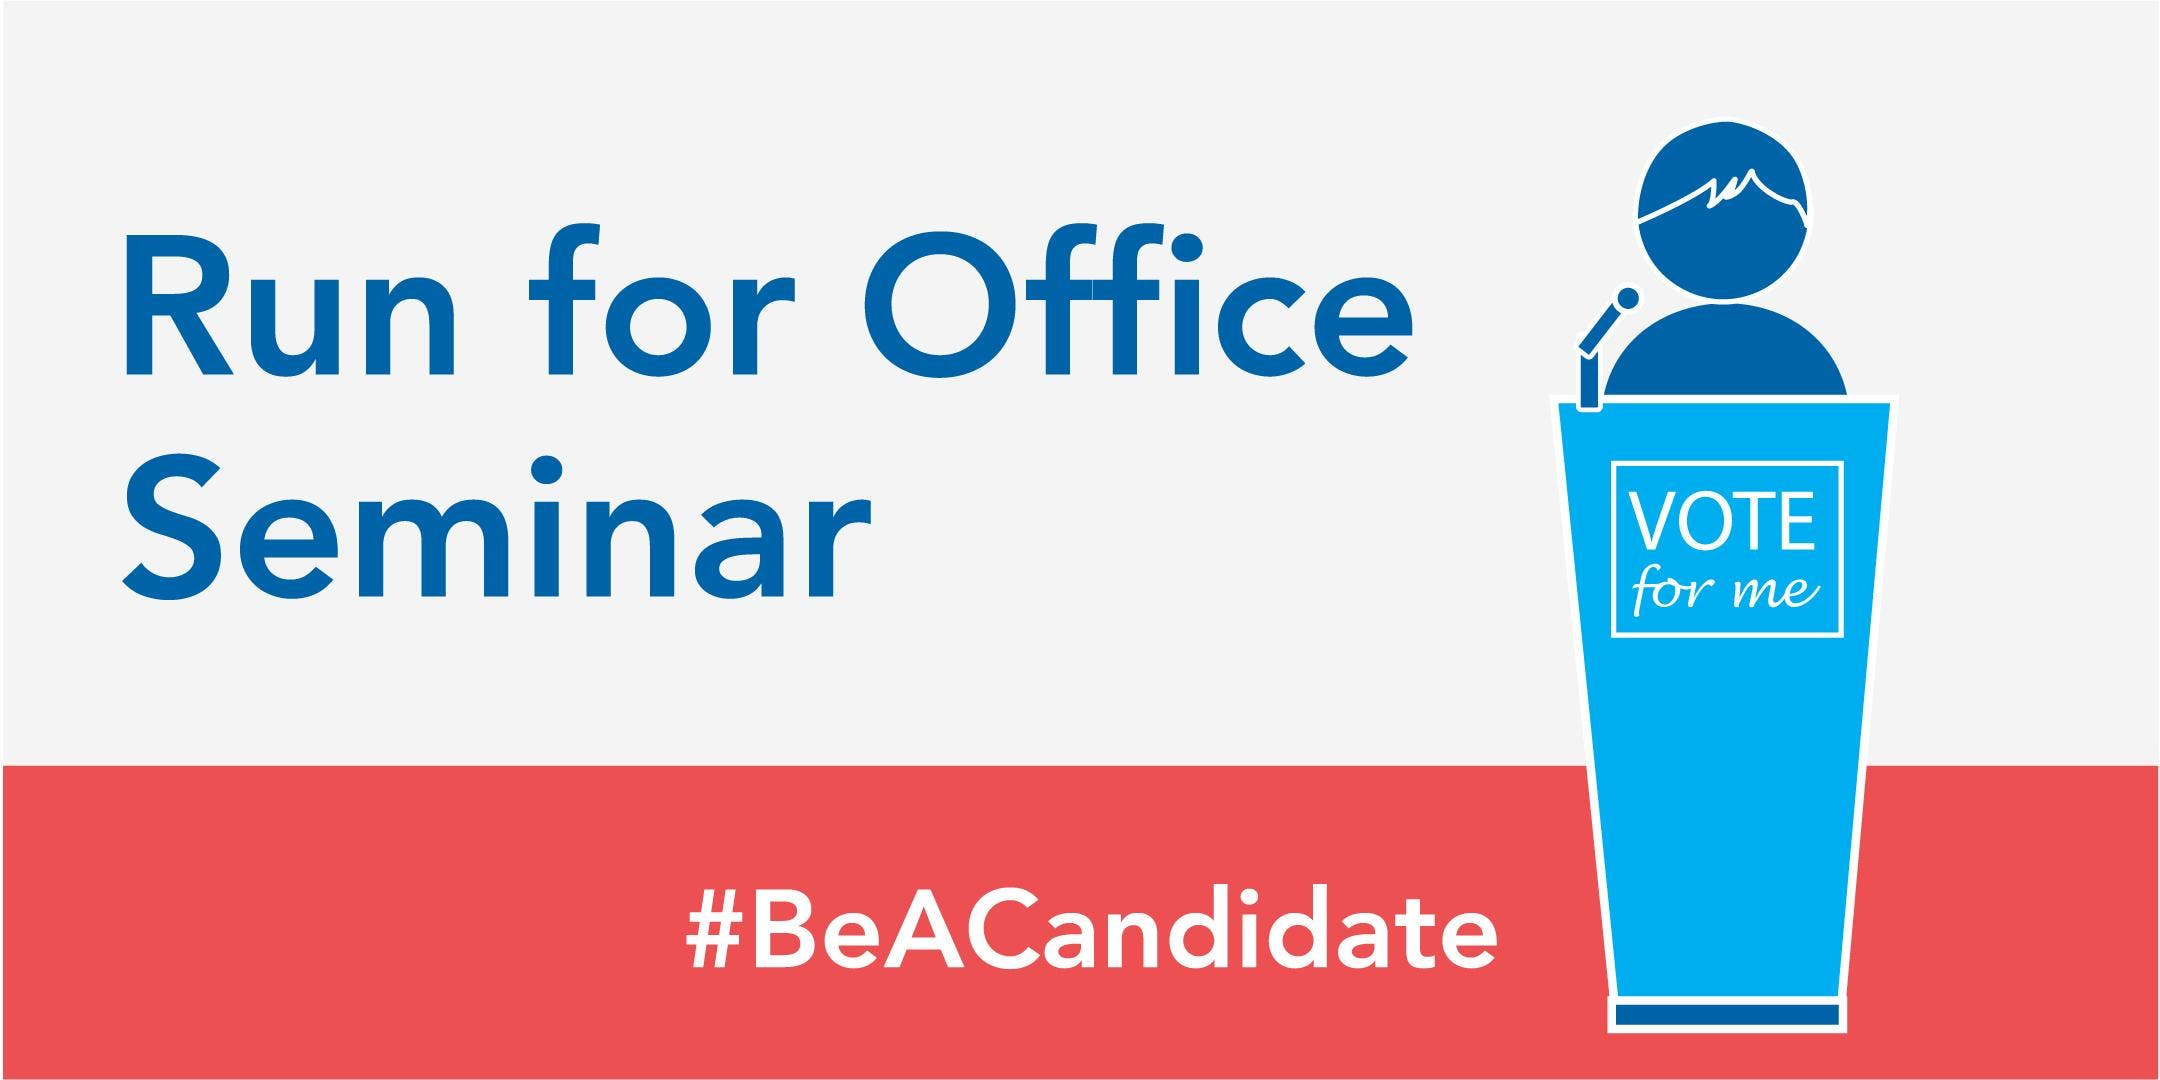 How To Run For Office Seminar At Ccri Knight Campus Room 1128 1130